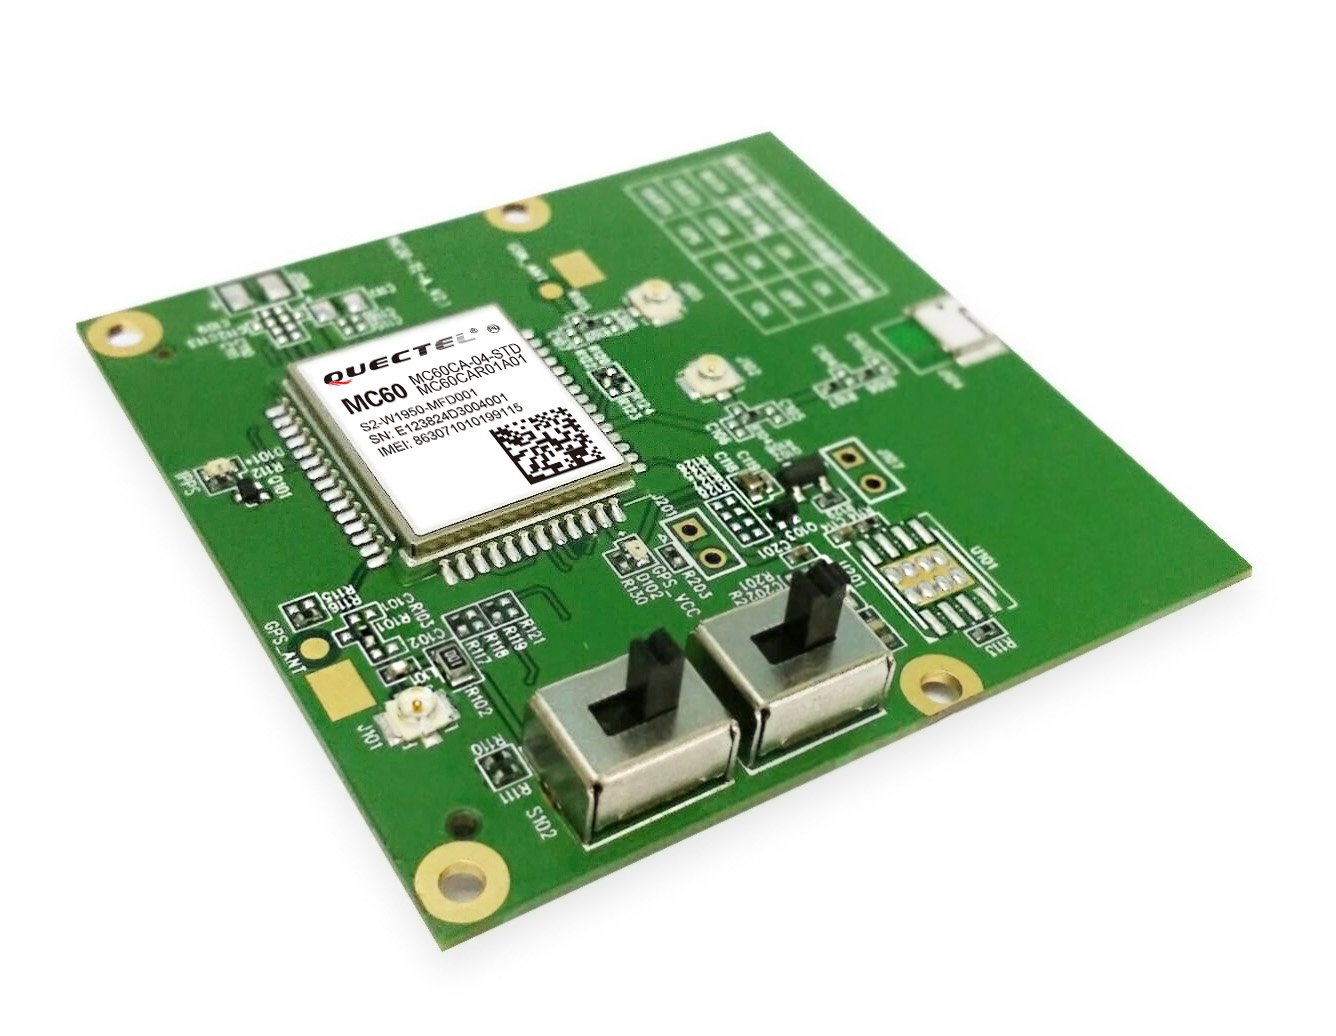 Quectel MC60 Testing Adapter Kit & Evaluation Board: Amazon